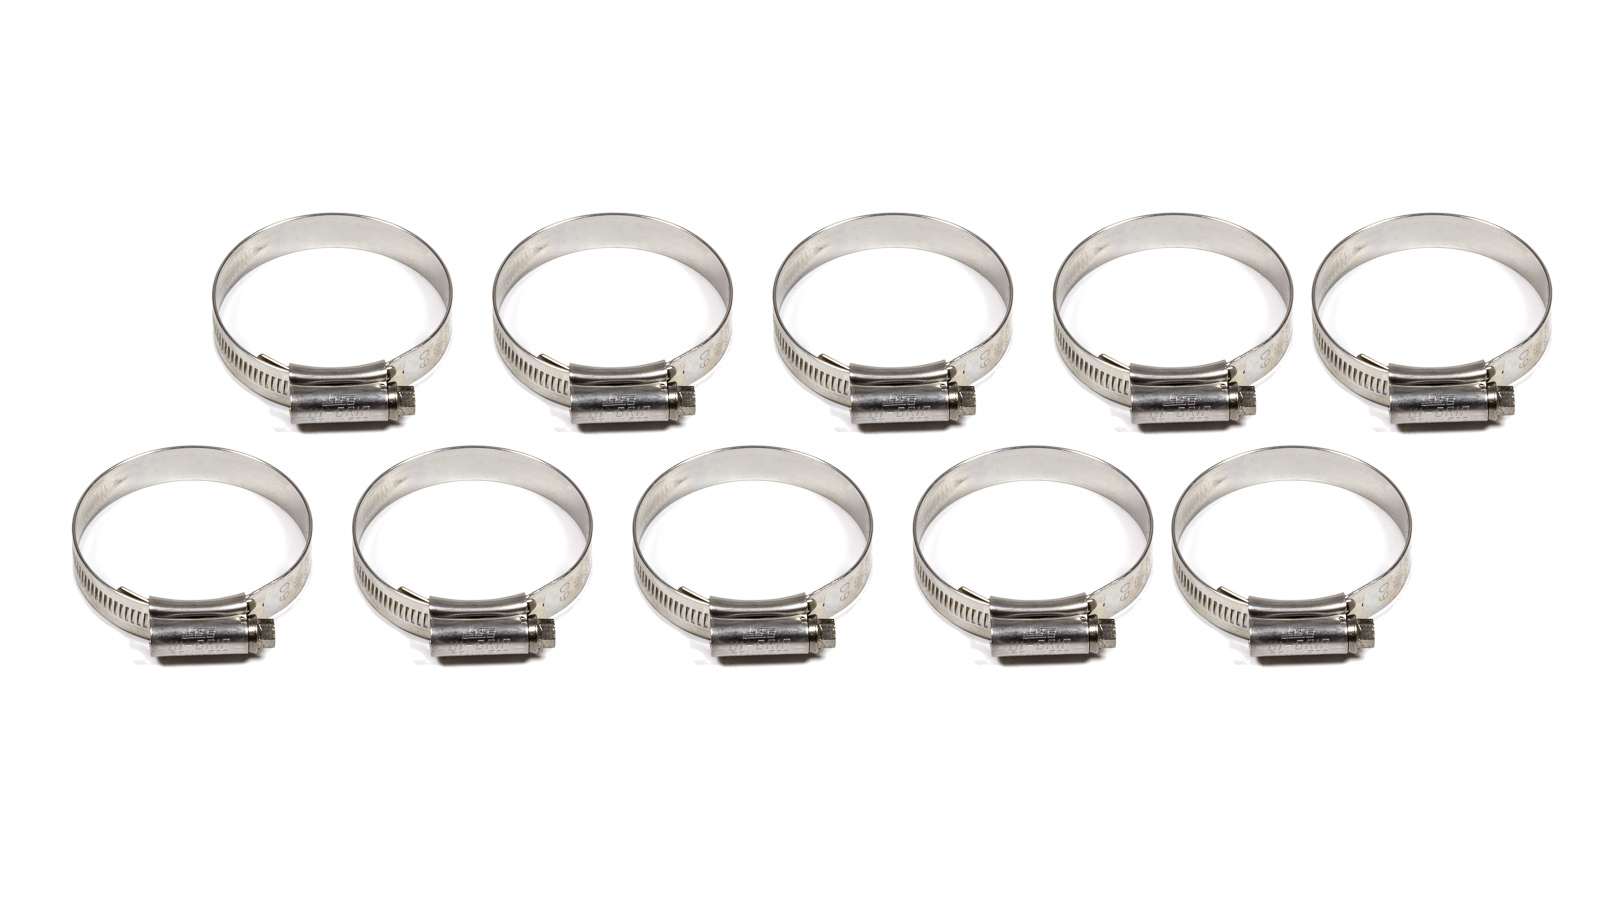 50mm-1.968in Hose Clamps 10pk